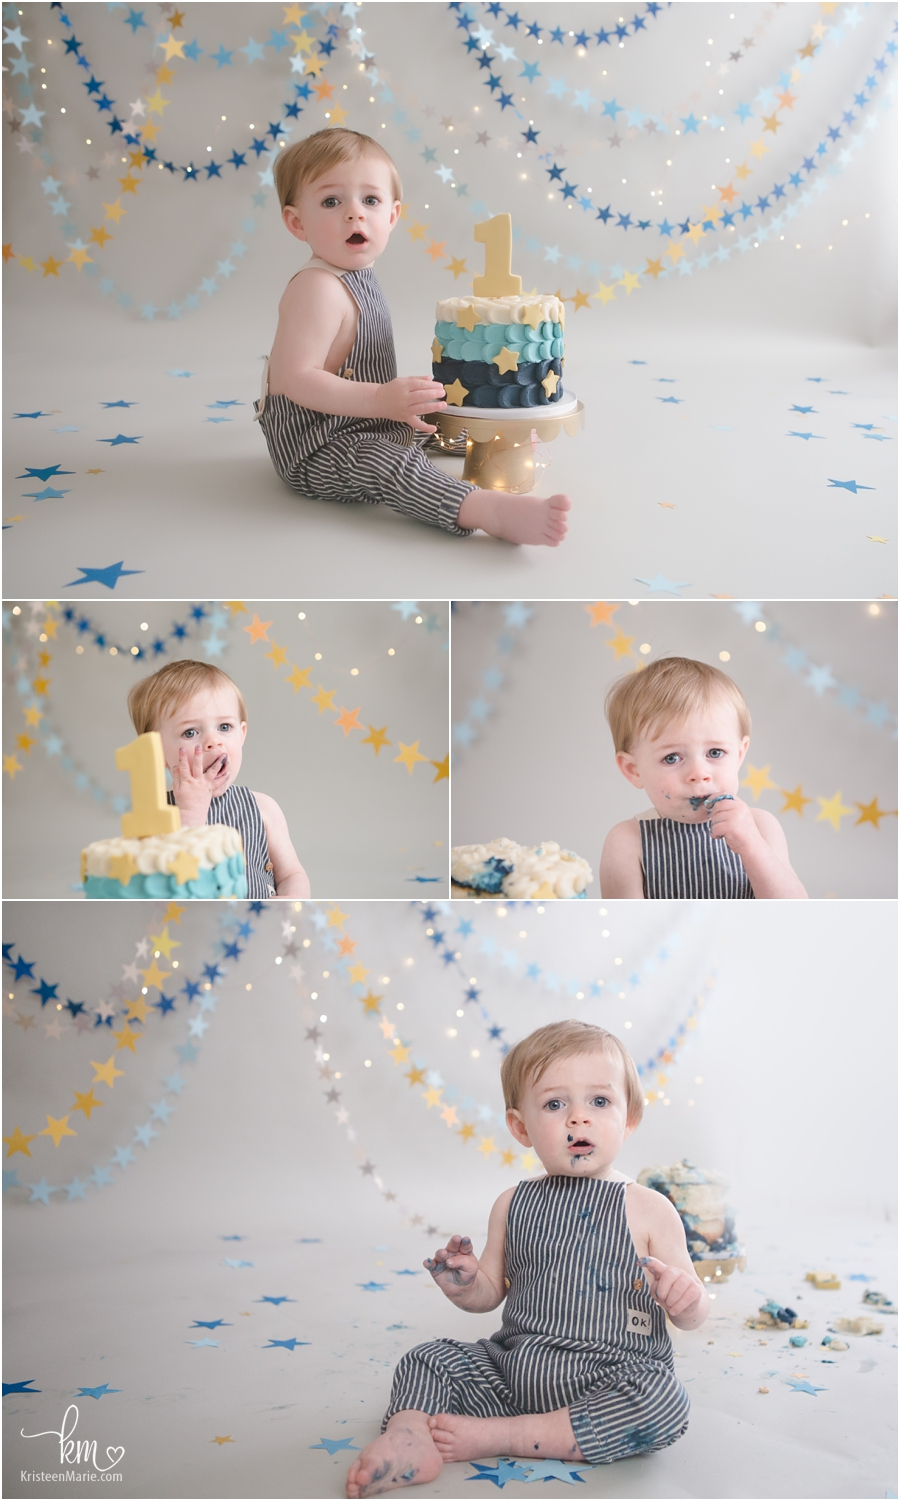 star themed 1st birthday cake smash session - Indianapolis photographer KristeenMarie